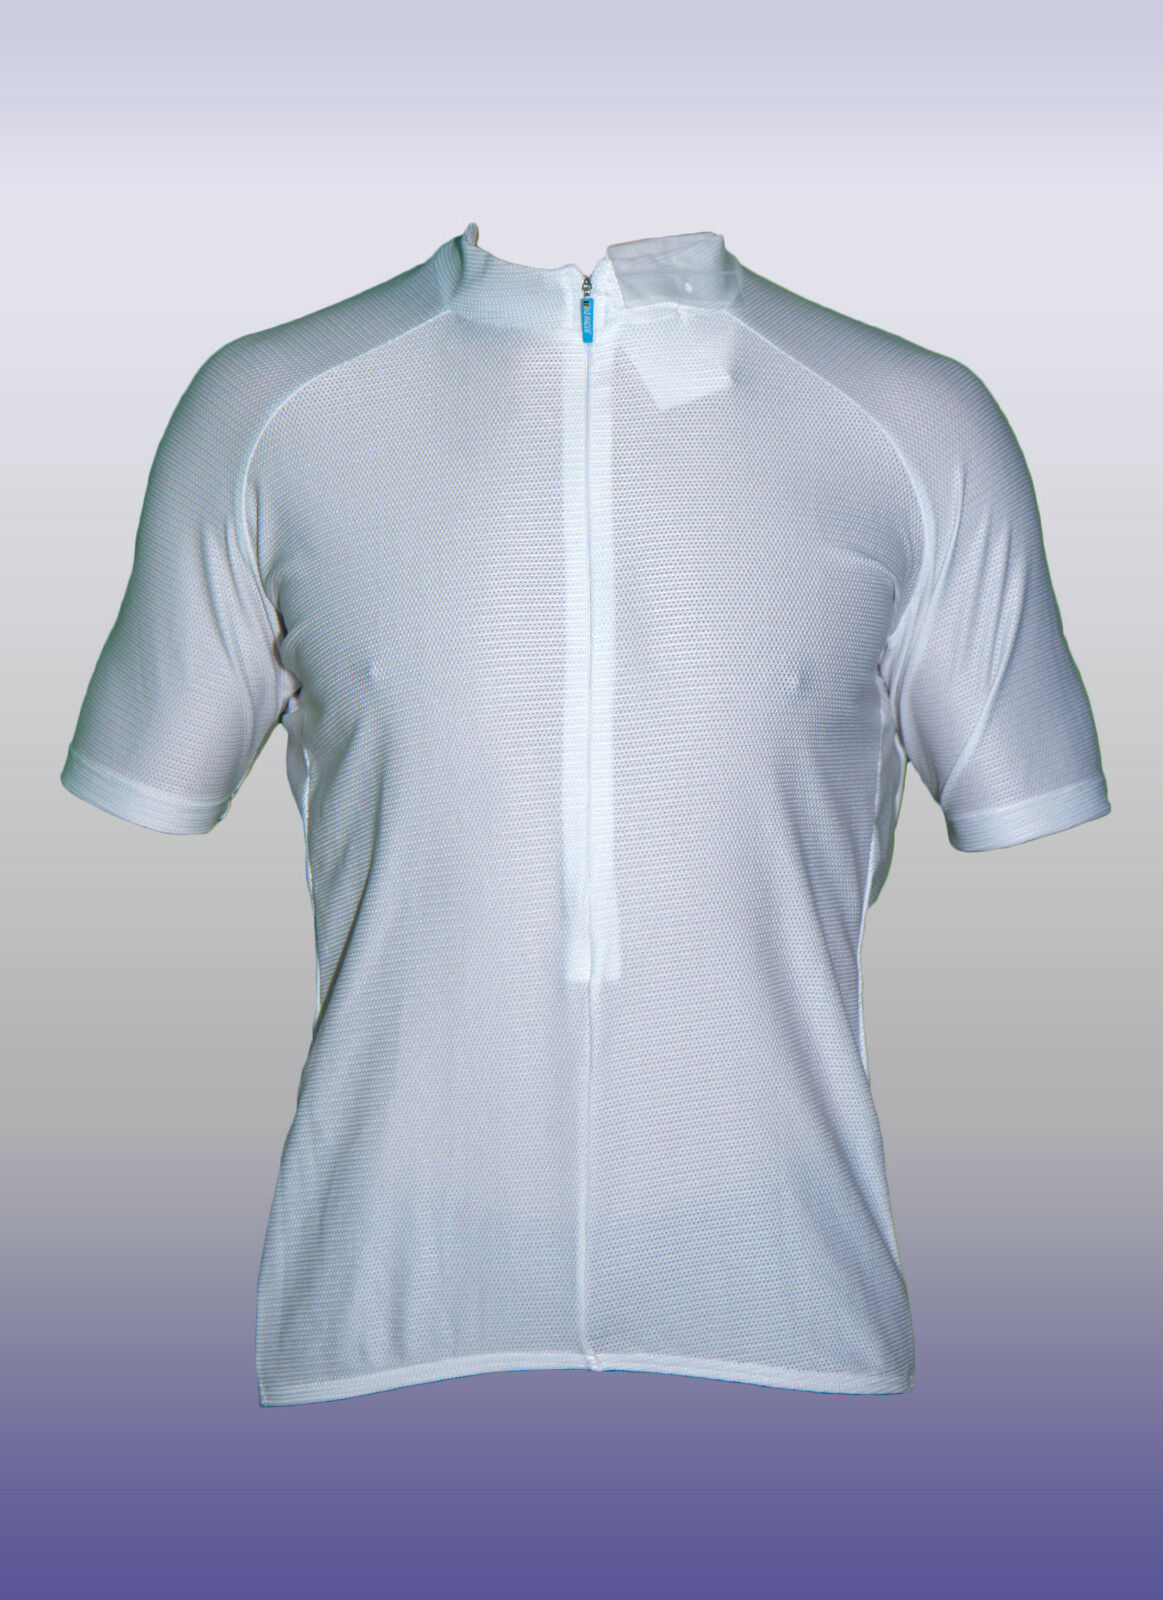 NEW  BIORACER White Cycling Jersey Size L (4)